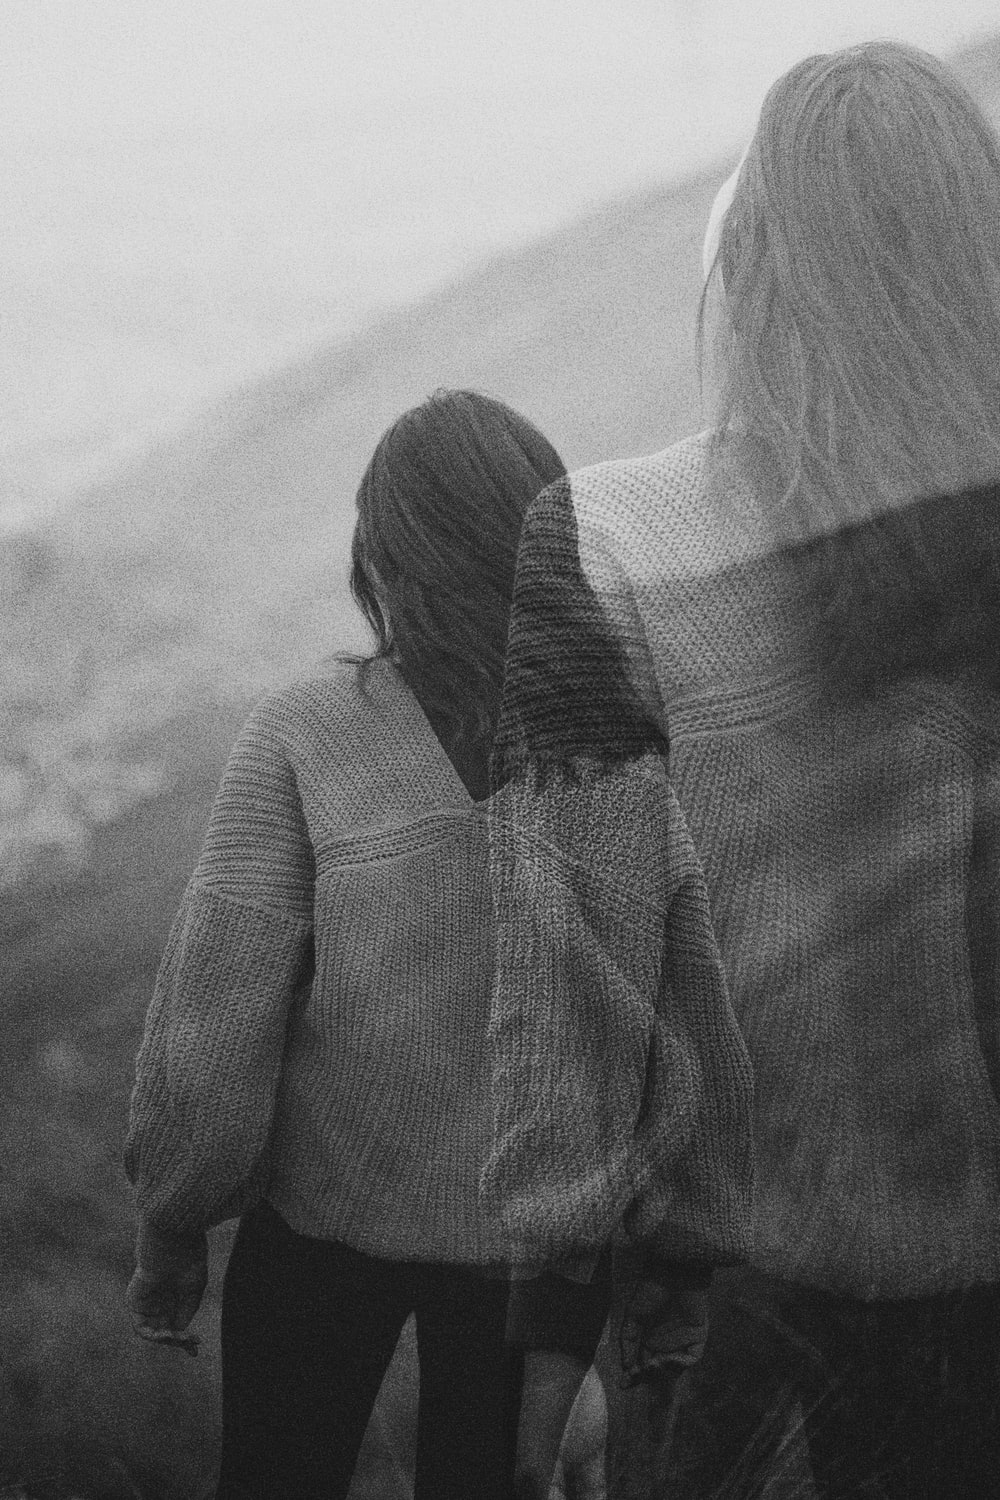 woman in knit sweater in grayscale photography